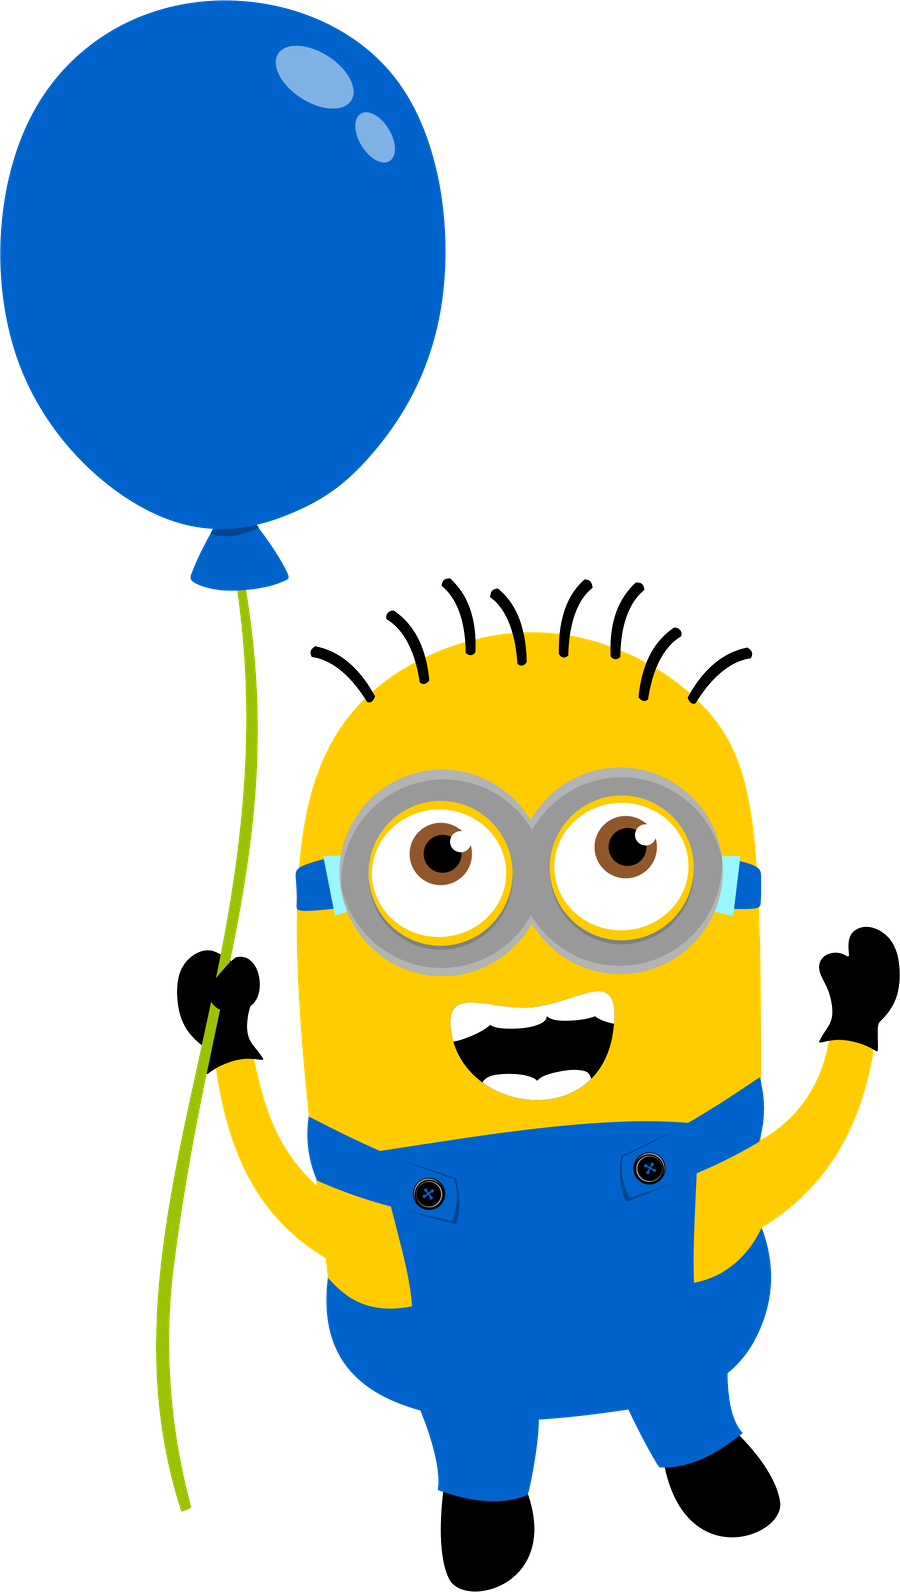 Minion birthday png. Minions minus alreadyclip art